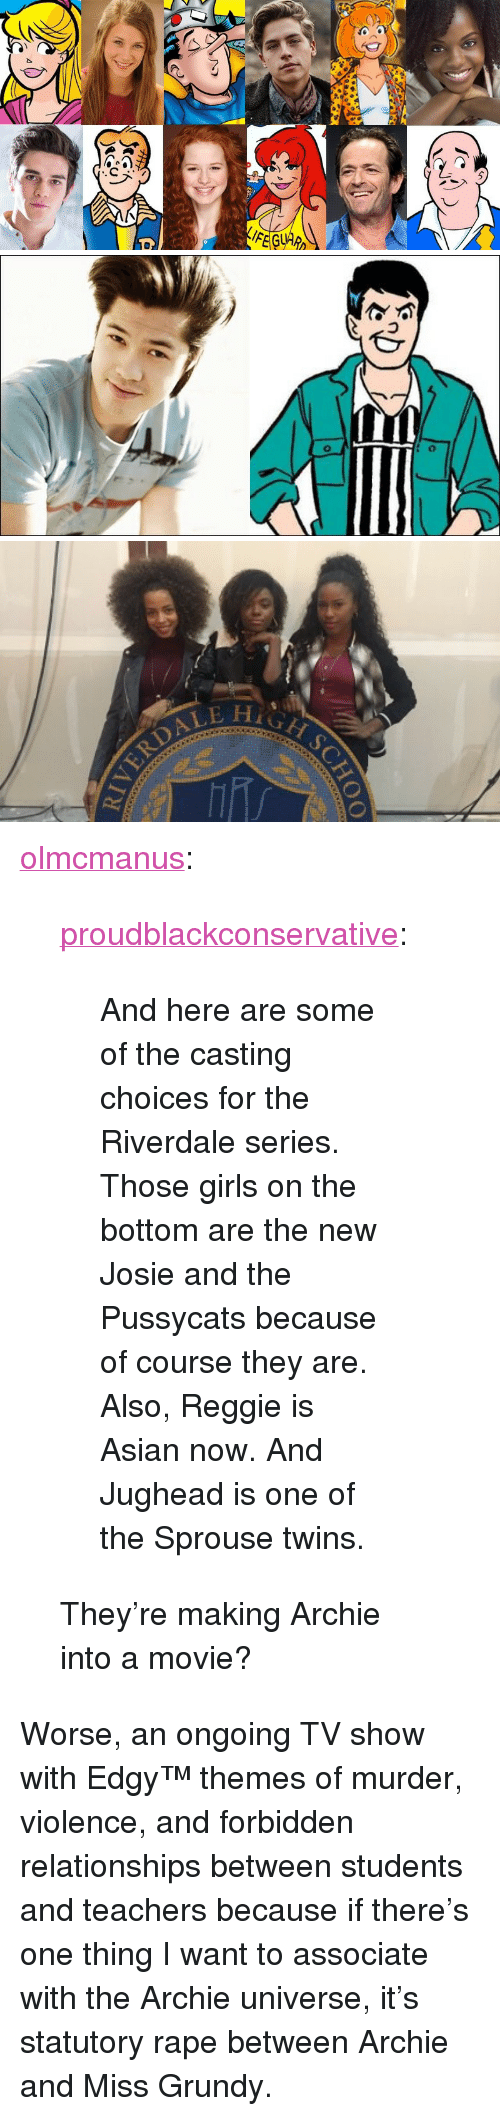 """riverdale: <p><a href=""""http://olmcmanus.tumblr.com/post/154012592431/and-here-are-some-of-the-casting-choices-for-the"""" class=""""tumblr_blog"""">olmcmanus</a>:</p>  <blockquote><p><a href=""""https://proudblackconservative.tumblr.com/post/154011465064/and-here-are-some-of-the-casting-choices-for-the"""" class=""""tumblr_blog"""">proudblackconservative</a>:</p>  <blockquote><p>And here are some of the casting choices for the Riverdale series. Those girls on the bottom are the new Josie and the Pussycats because of course they are. Also, Reggie is Asian now. And Jughead is one of the Sprouse twins. </p></blockquote>  <p>They're making Archie into a movie?</p></blockquote>  <p>Worse, an ongoing TV show with Edgy™ themes of murder, violence, and forbidden relationships between students and teachers because if there&rsquo;s one thing I want to associate with the Archie universe, it&rsquo;s statutory rape between Archie and Miss Grundy.</p>"""